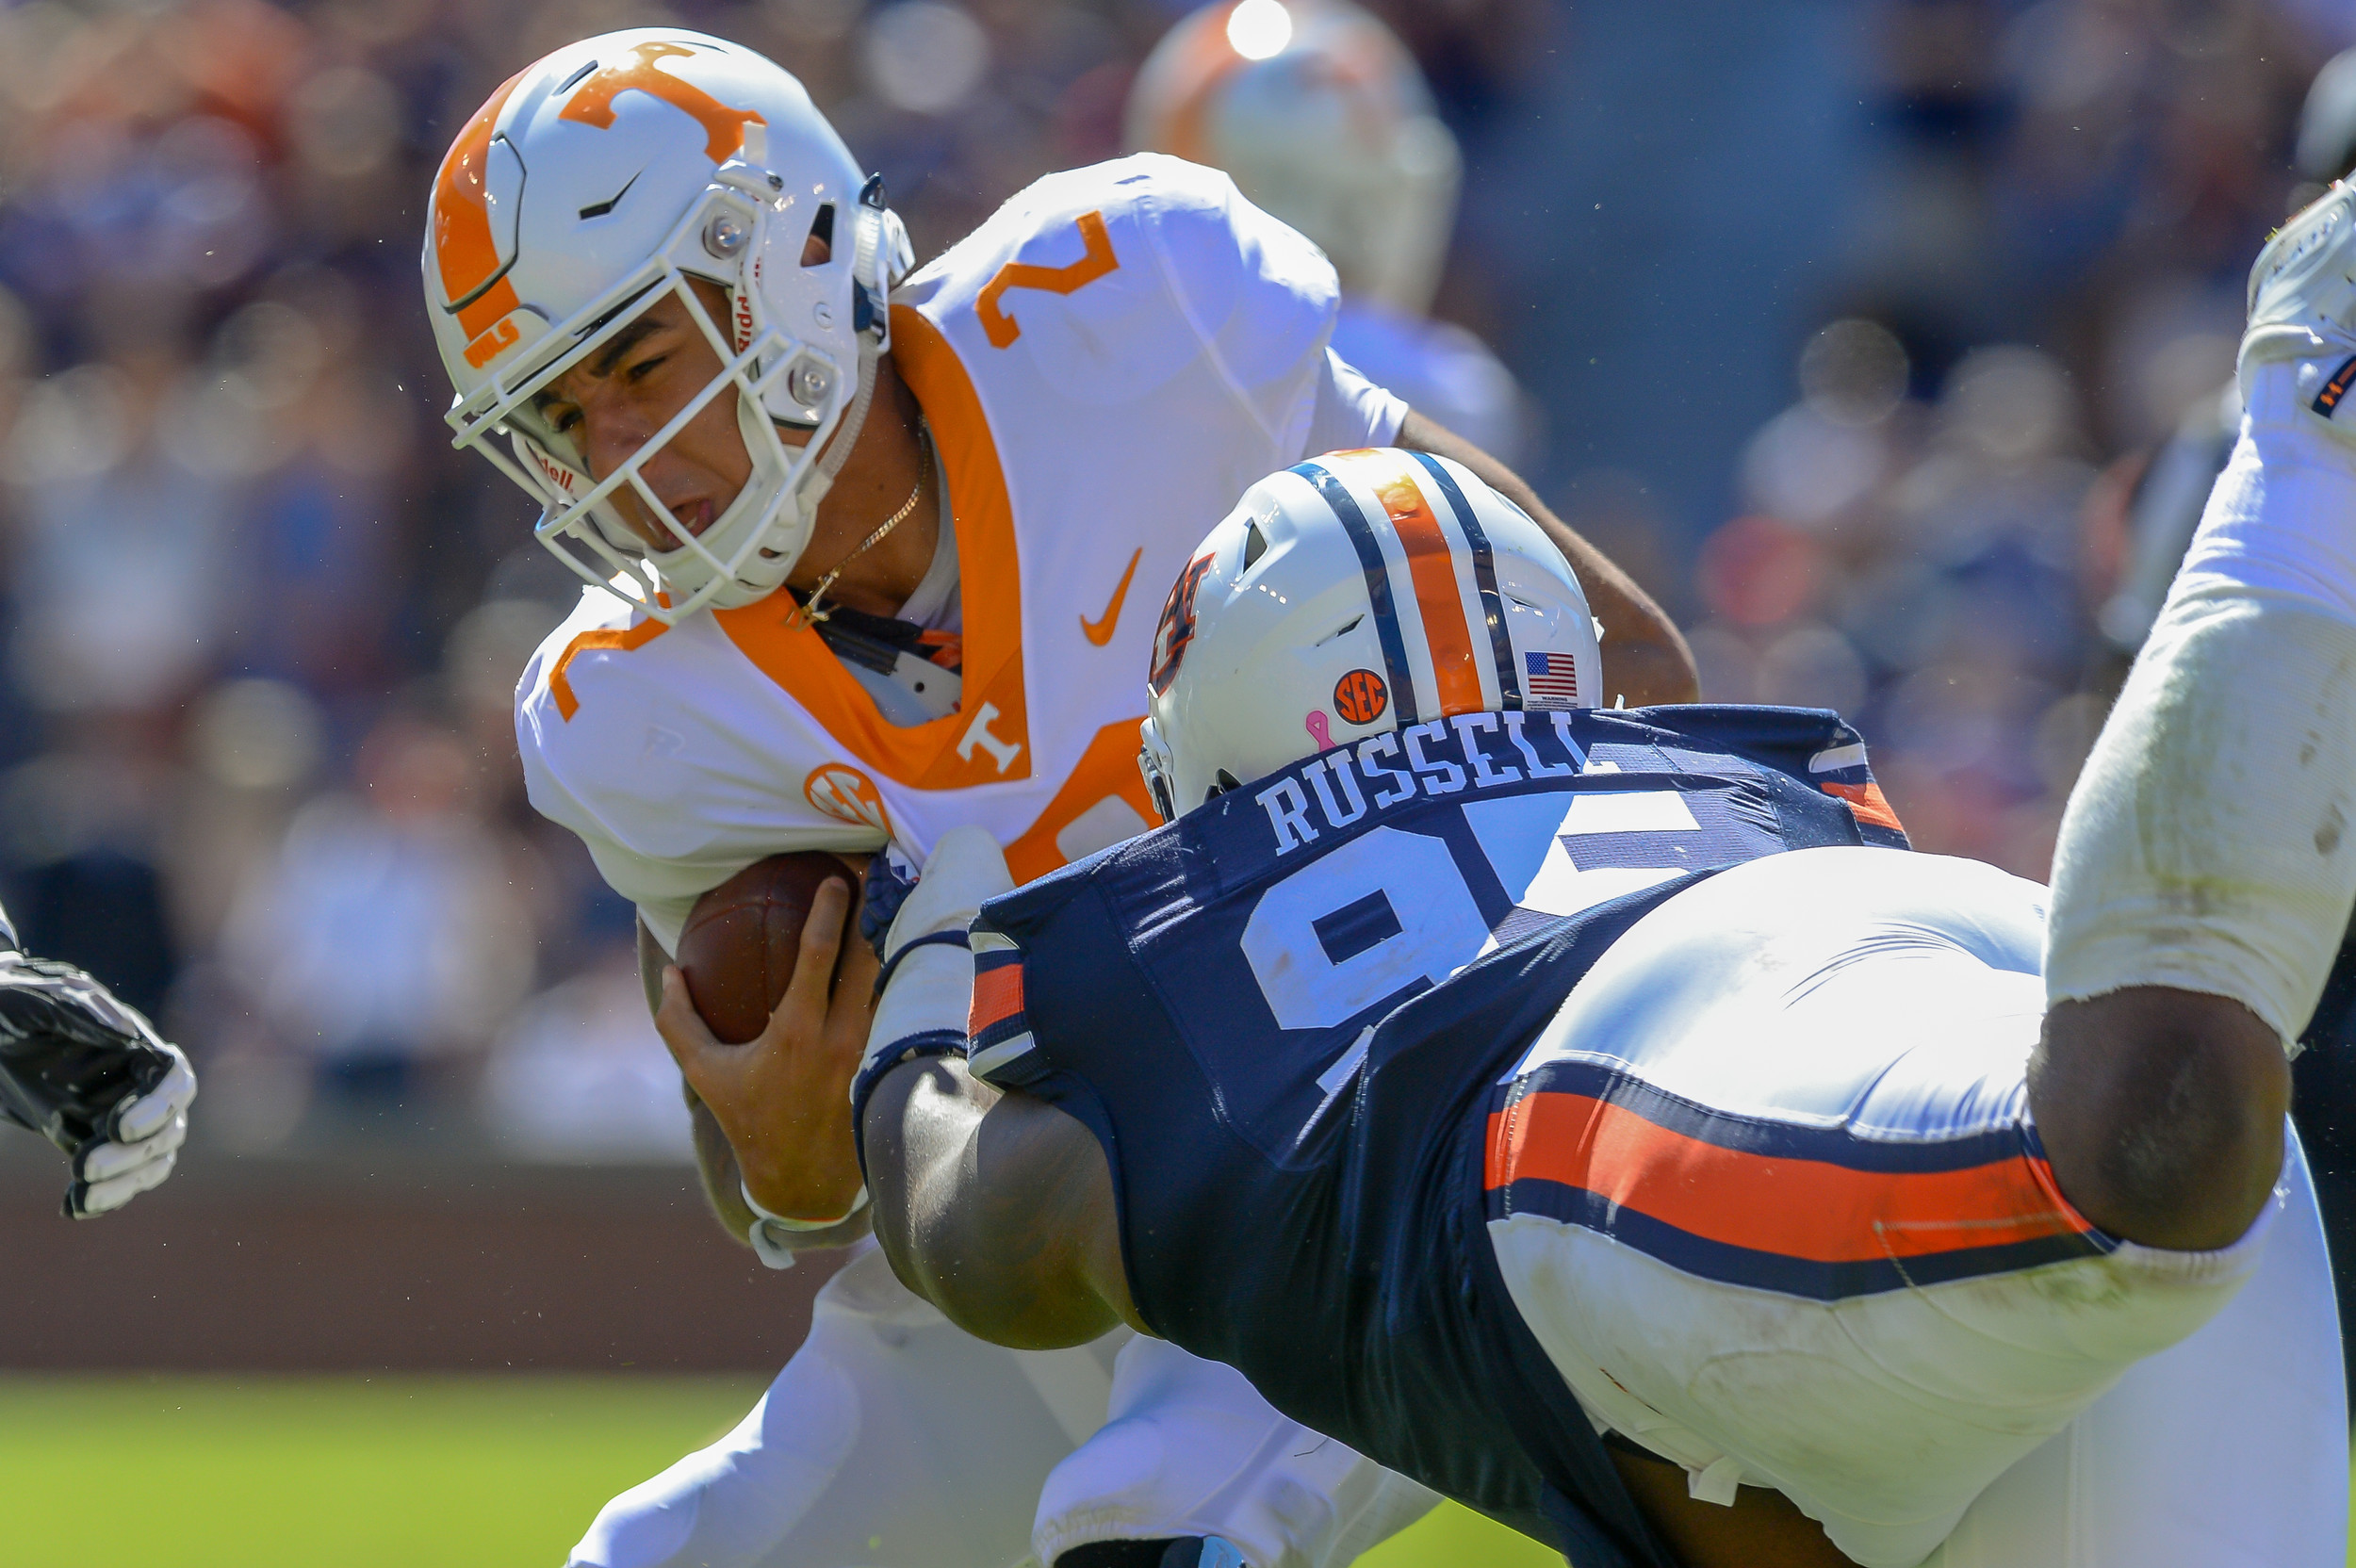 Auburn Tigers defensive lineman Dontavius Russell (95) pressures Tennessee Volunteers quarterback Jarrett Guarantano (2) during the second half of Saturday's game, at Jordan-Hare Stadium in Auburn, AL. Daily Mountain Eagle -  Jeff Johnsey